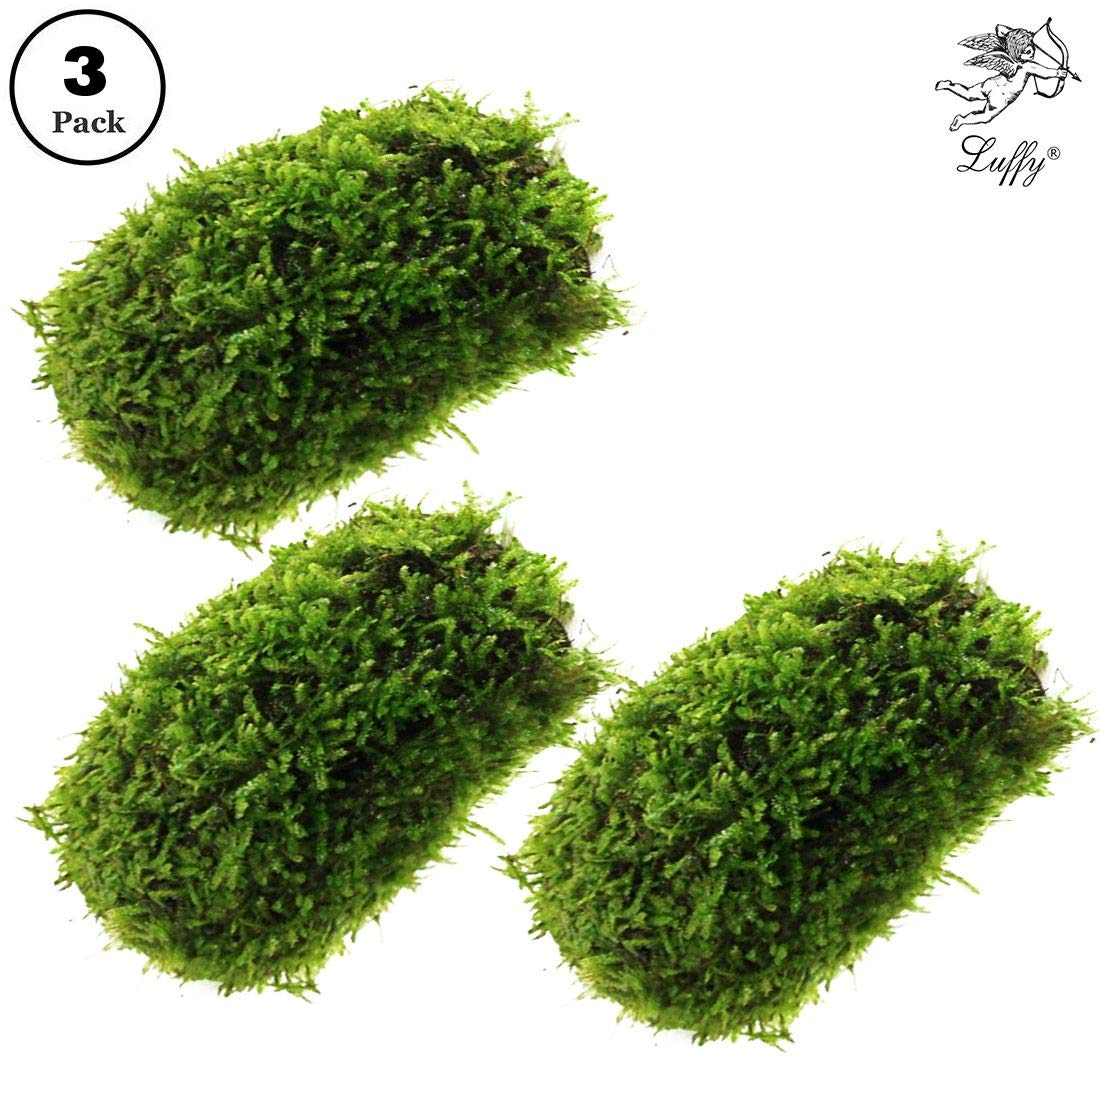 3 Pcs. Coco Mini Moss --- Hiding & Breeding Spot for Fry & Shrimps - Aquatic Play Toy - Fish Moves Around or Swim Under - Builds a Beautiful Aquascape - Easy Care, Hardy, and Long-Lasting Plant by Luffy